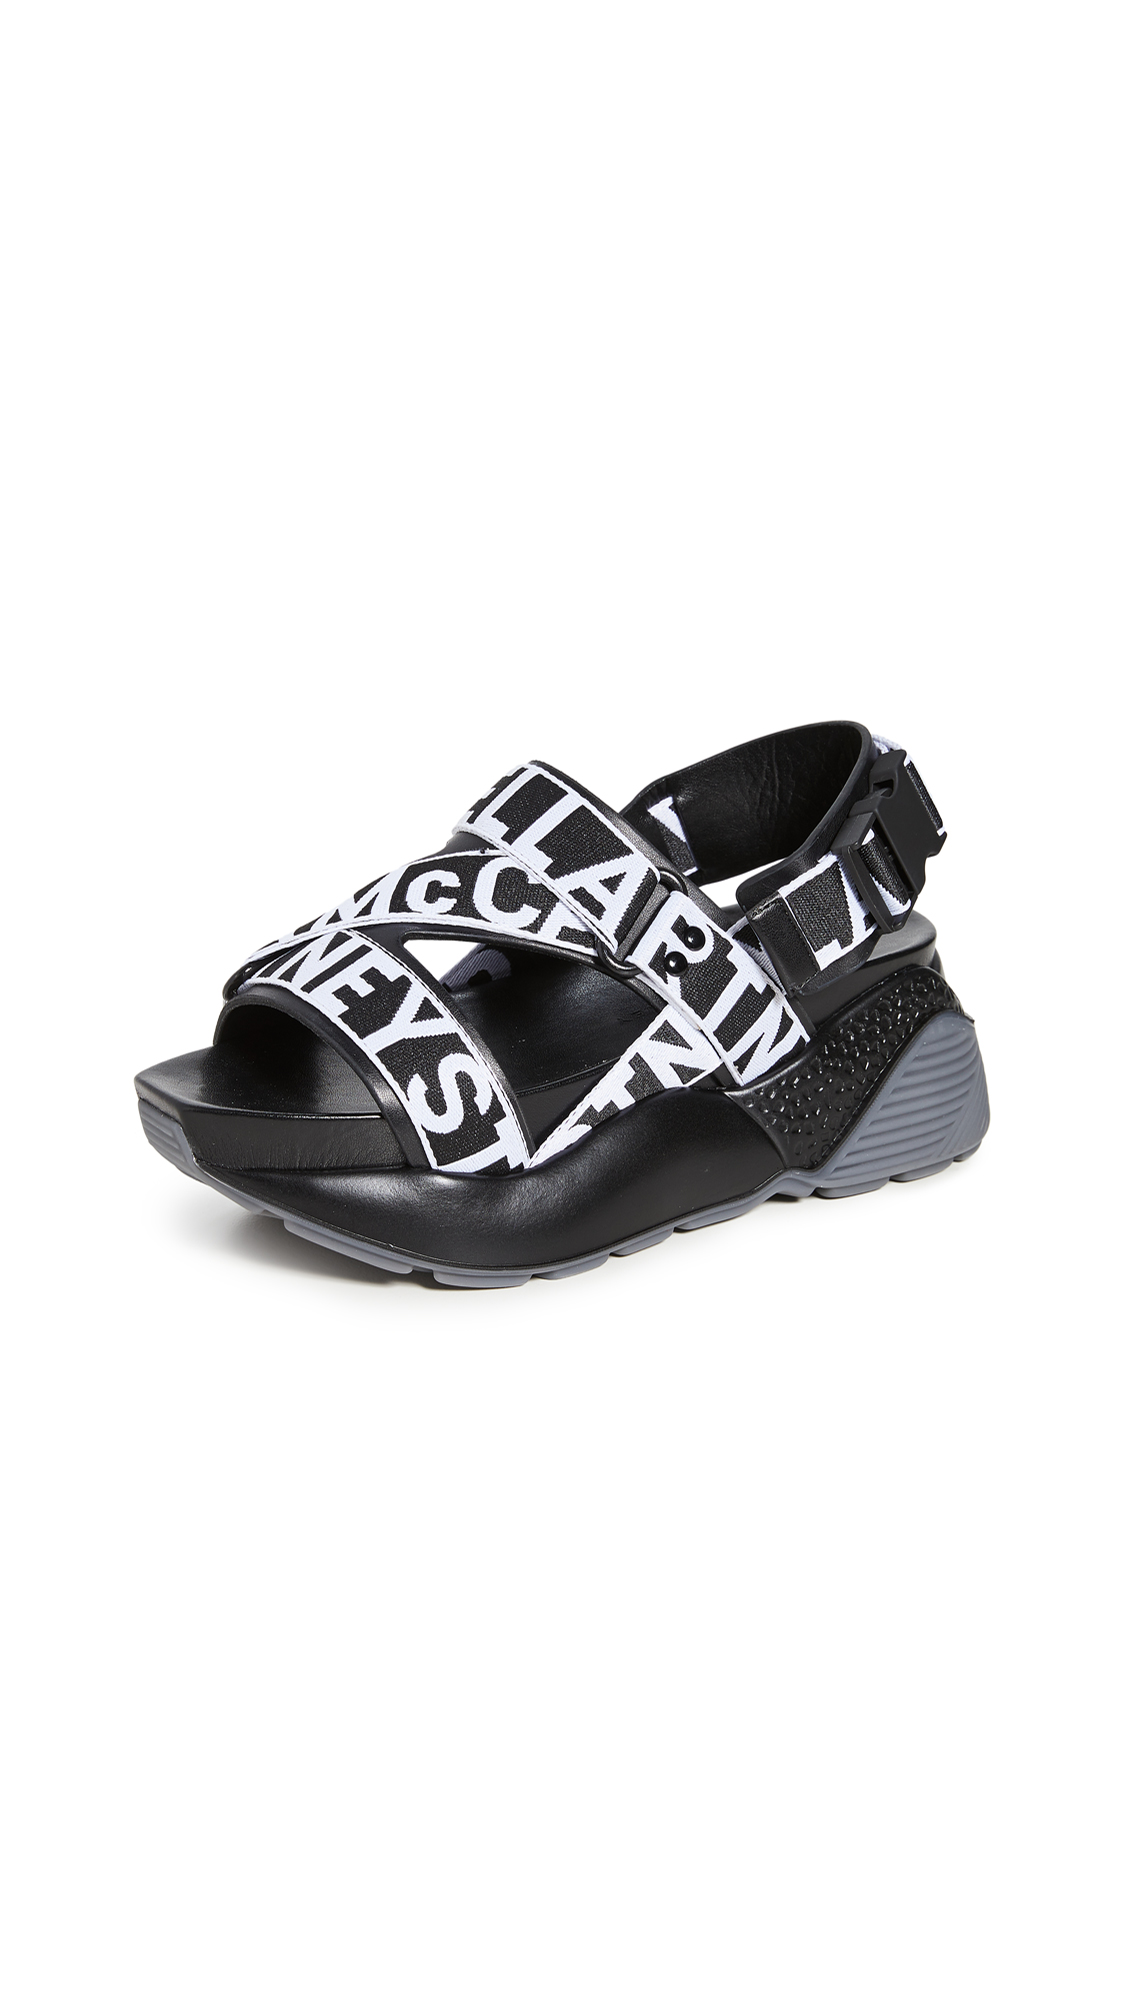 Buy Stella McCartney Eclypse Sandals online, shop Stella McCartney